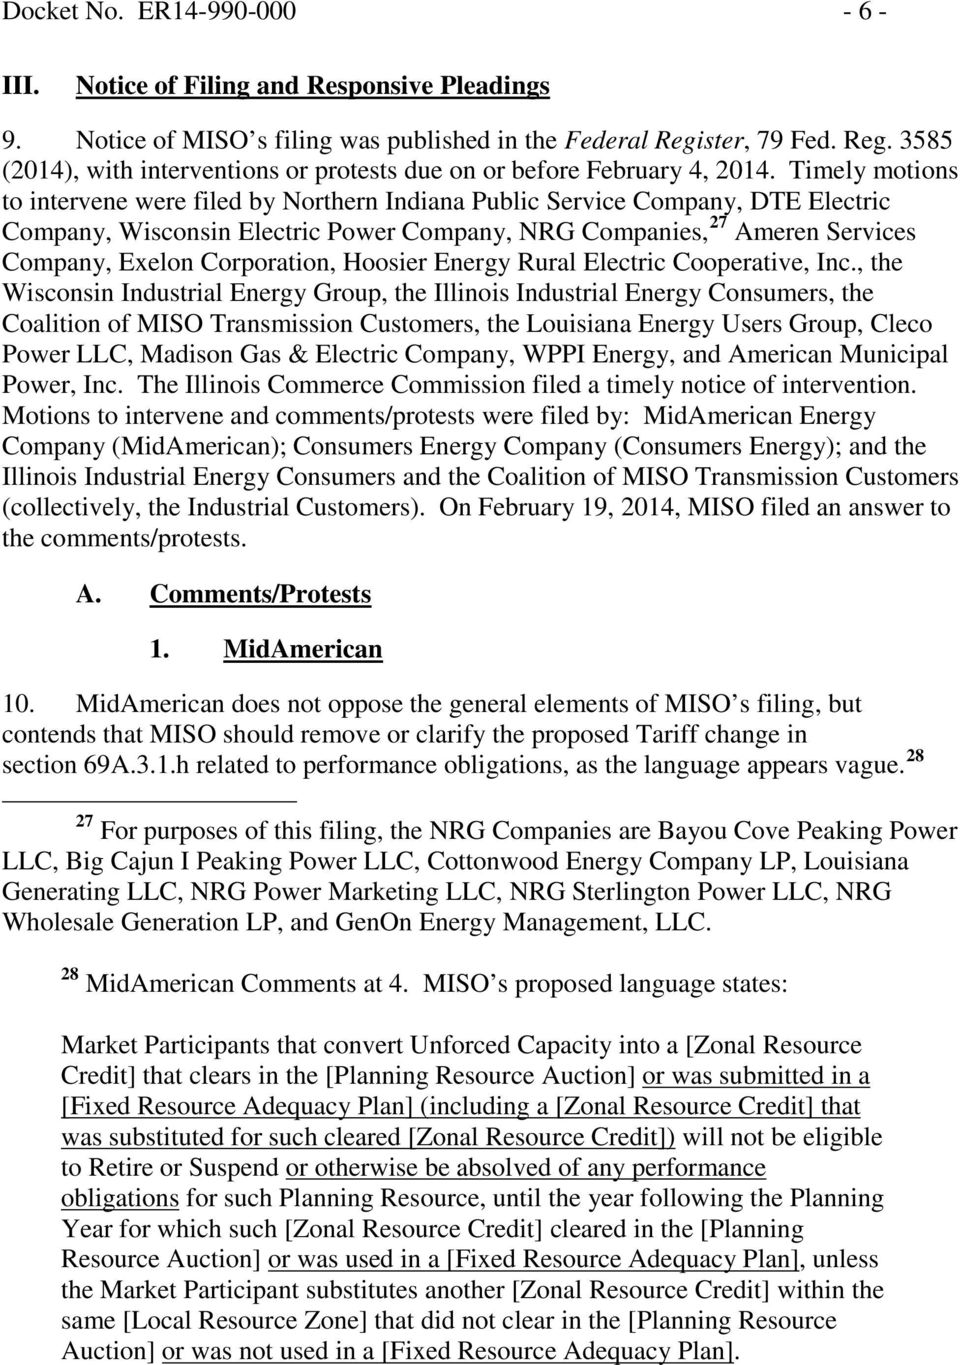 Timely motions to intervene were filed by Northern Indiana Public Service Company, DTE Electric Company, Wisconsin Electric Power Company, NRG Companies, 27 Ameren Services Company, Exelon